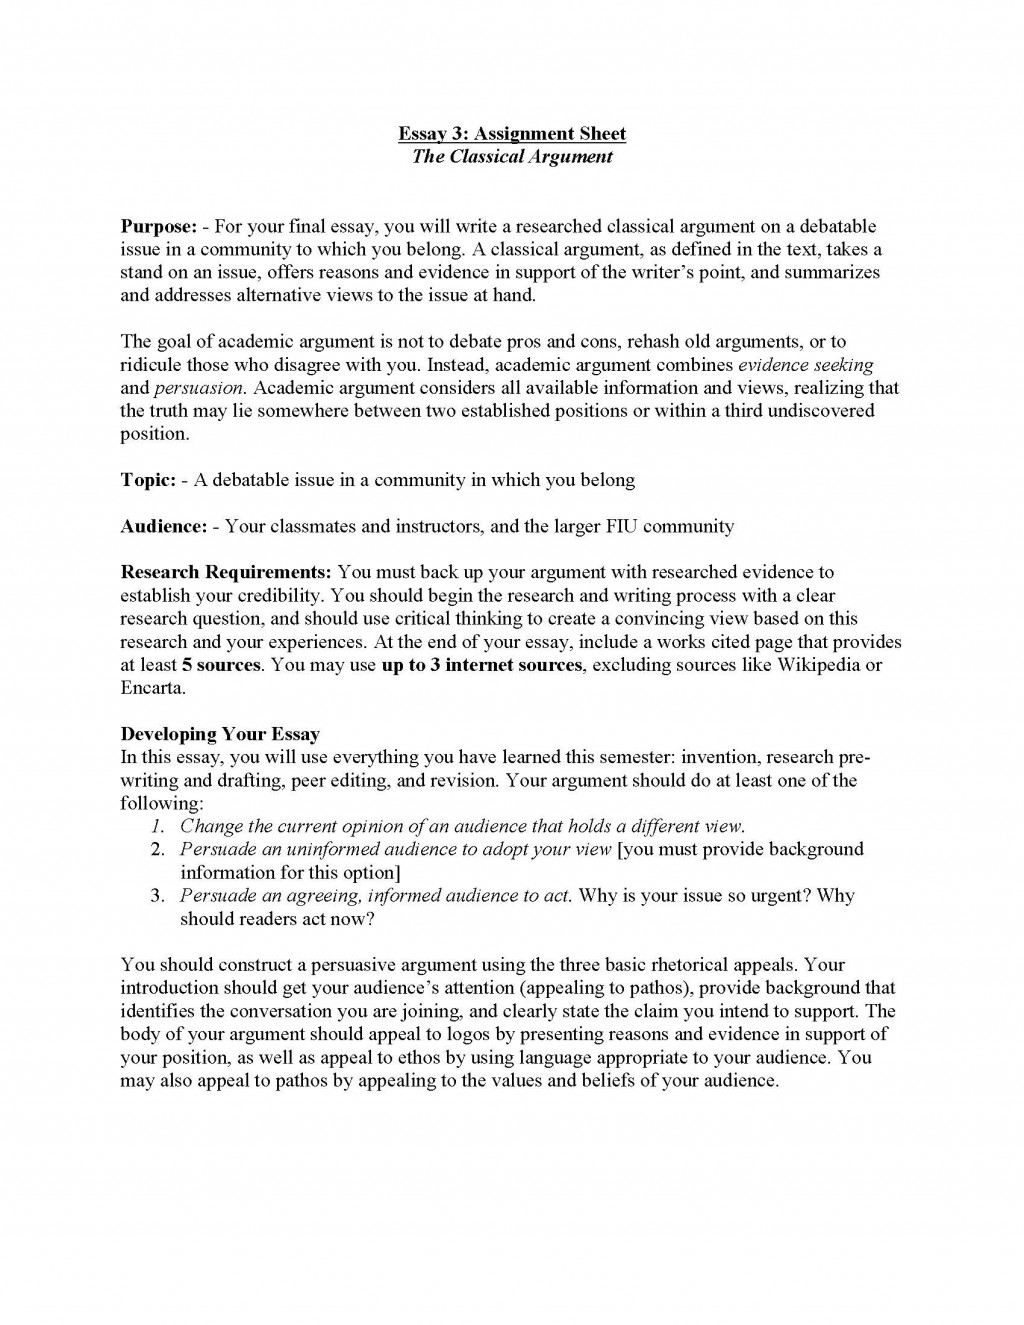 003 Essay Example What Is Proposal Argument Classical Unit Assignment Page 1 Excellent A Large